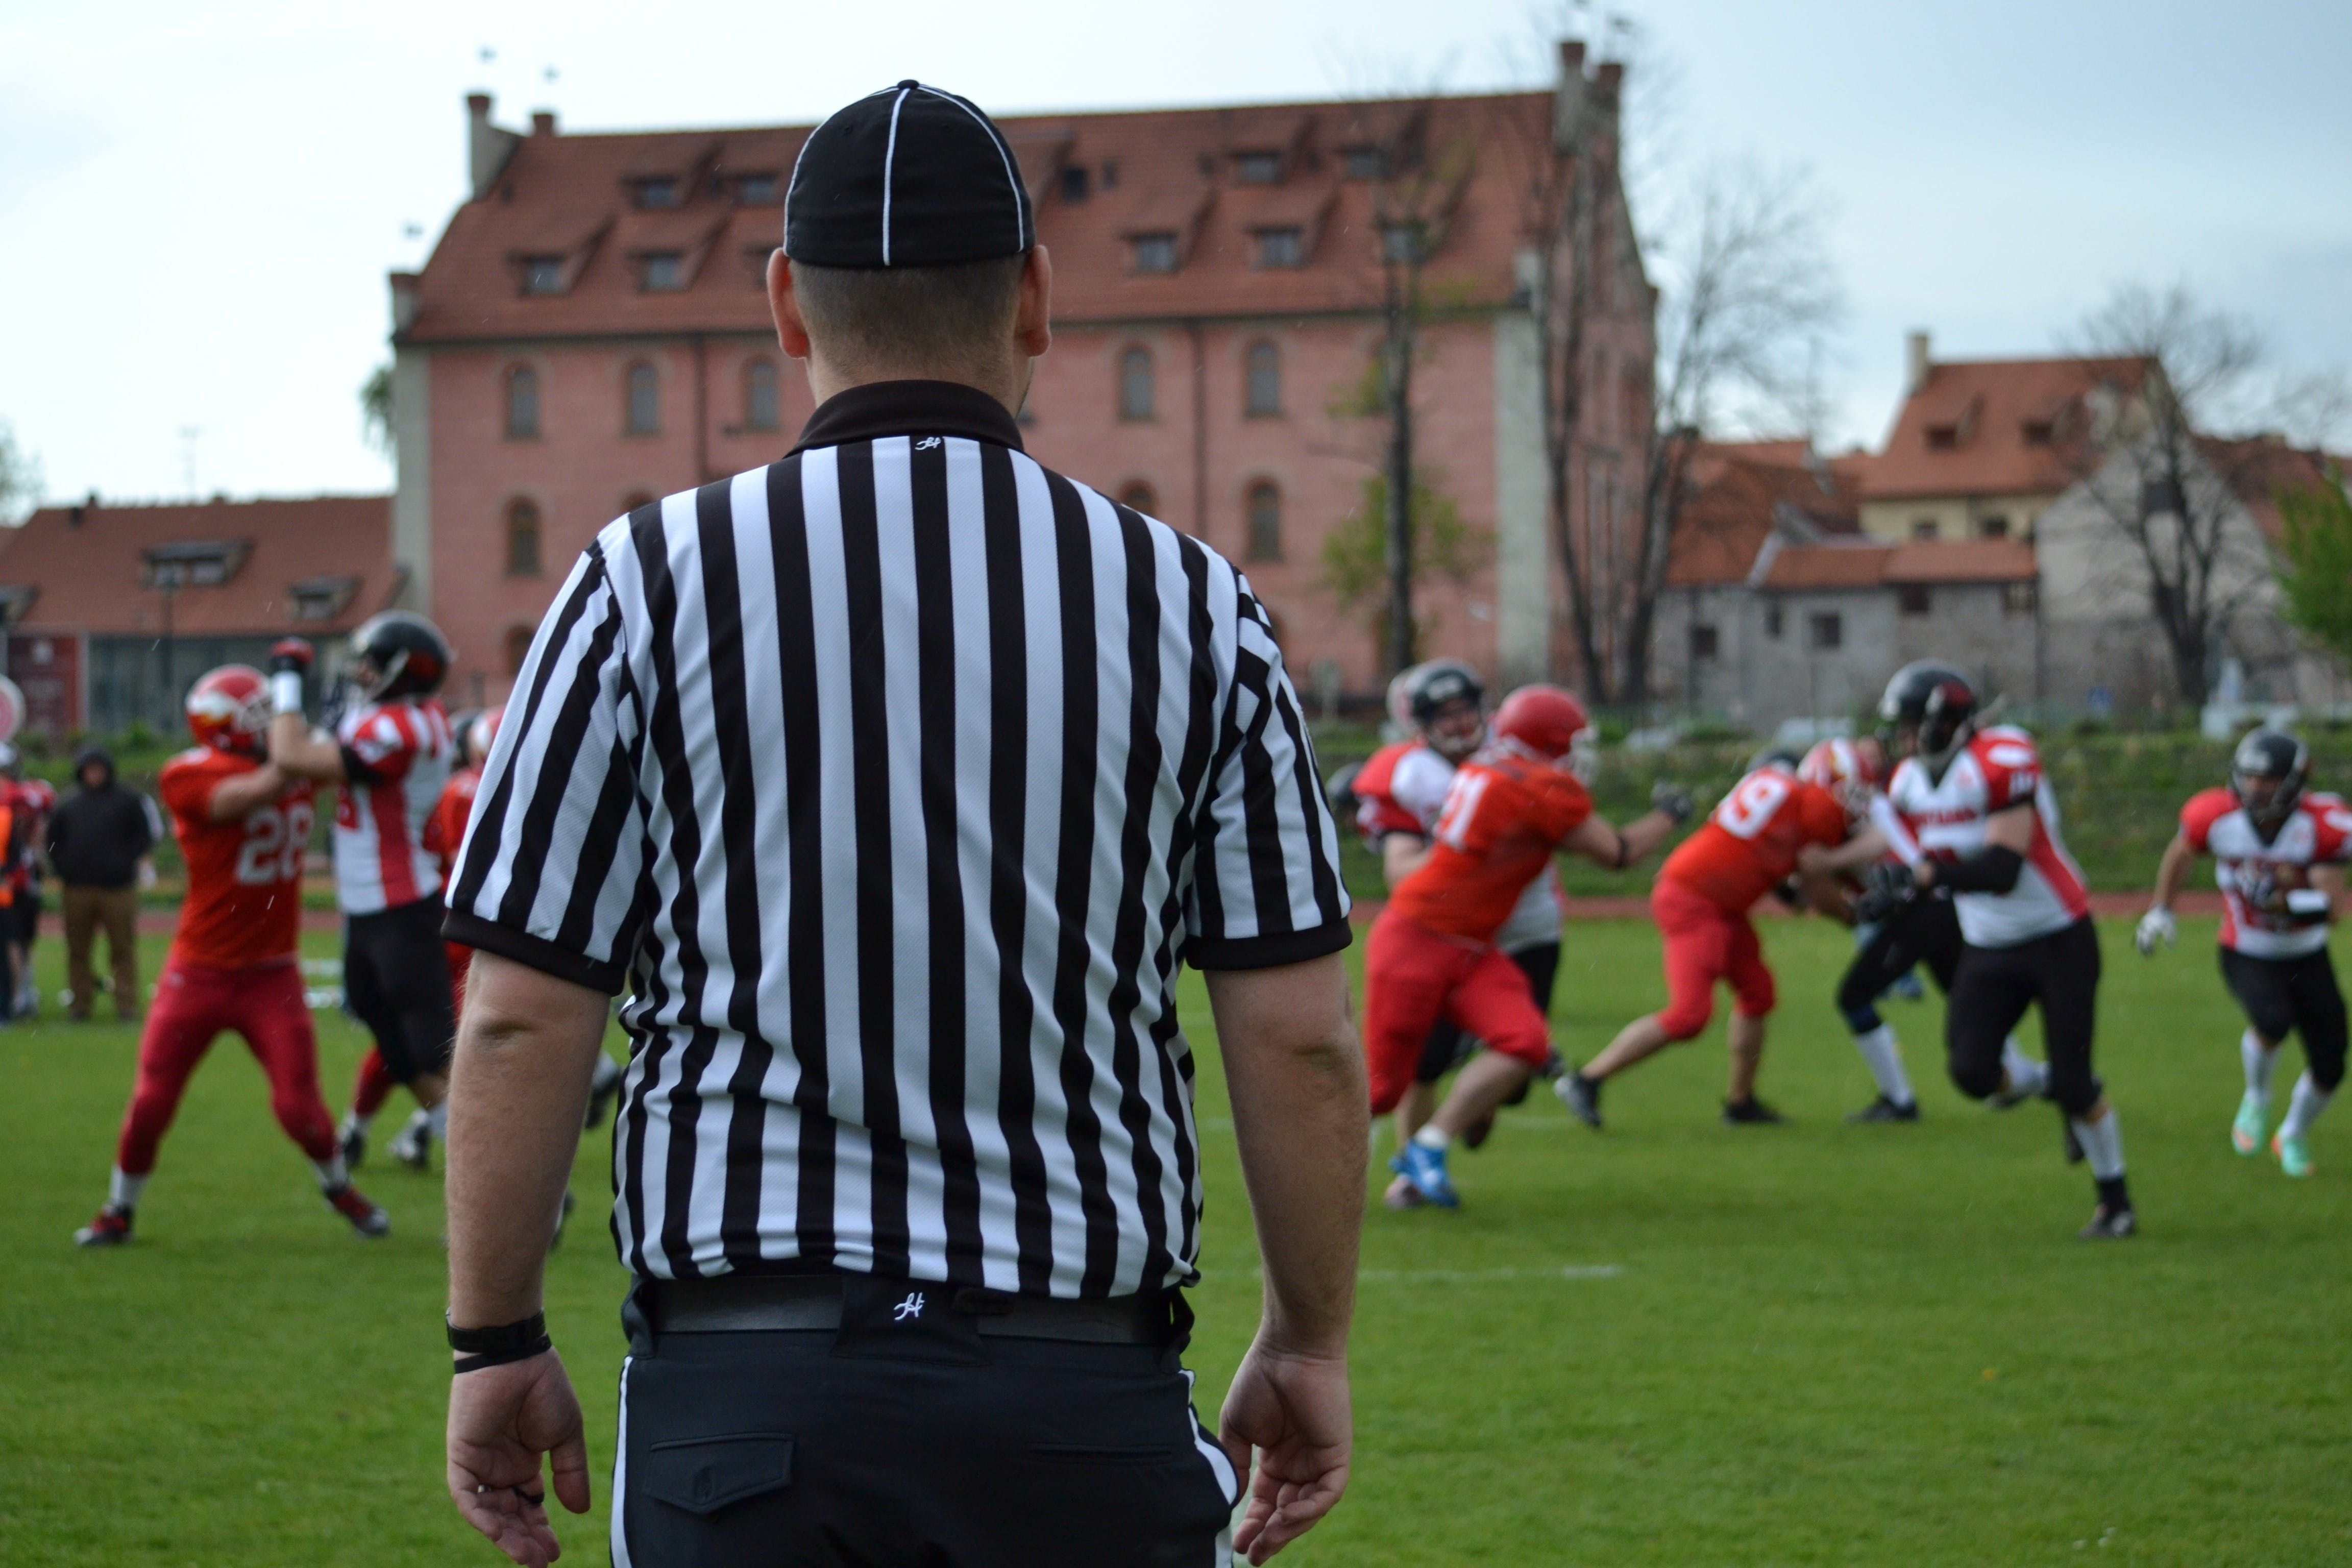 Free stock photo of American football, black and white clothing, contact game, referee